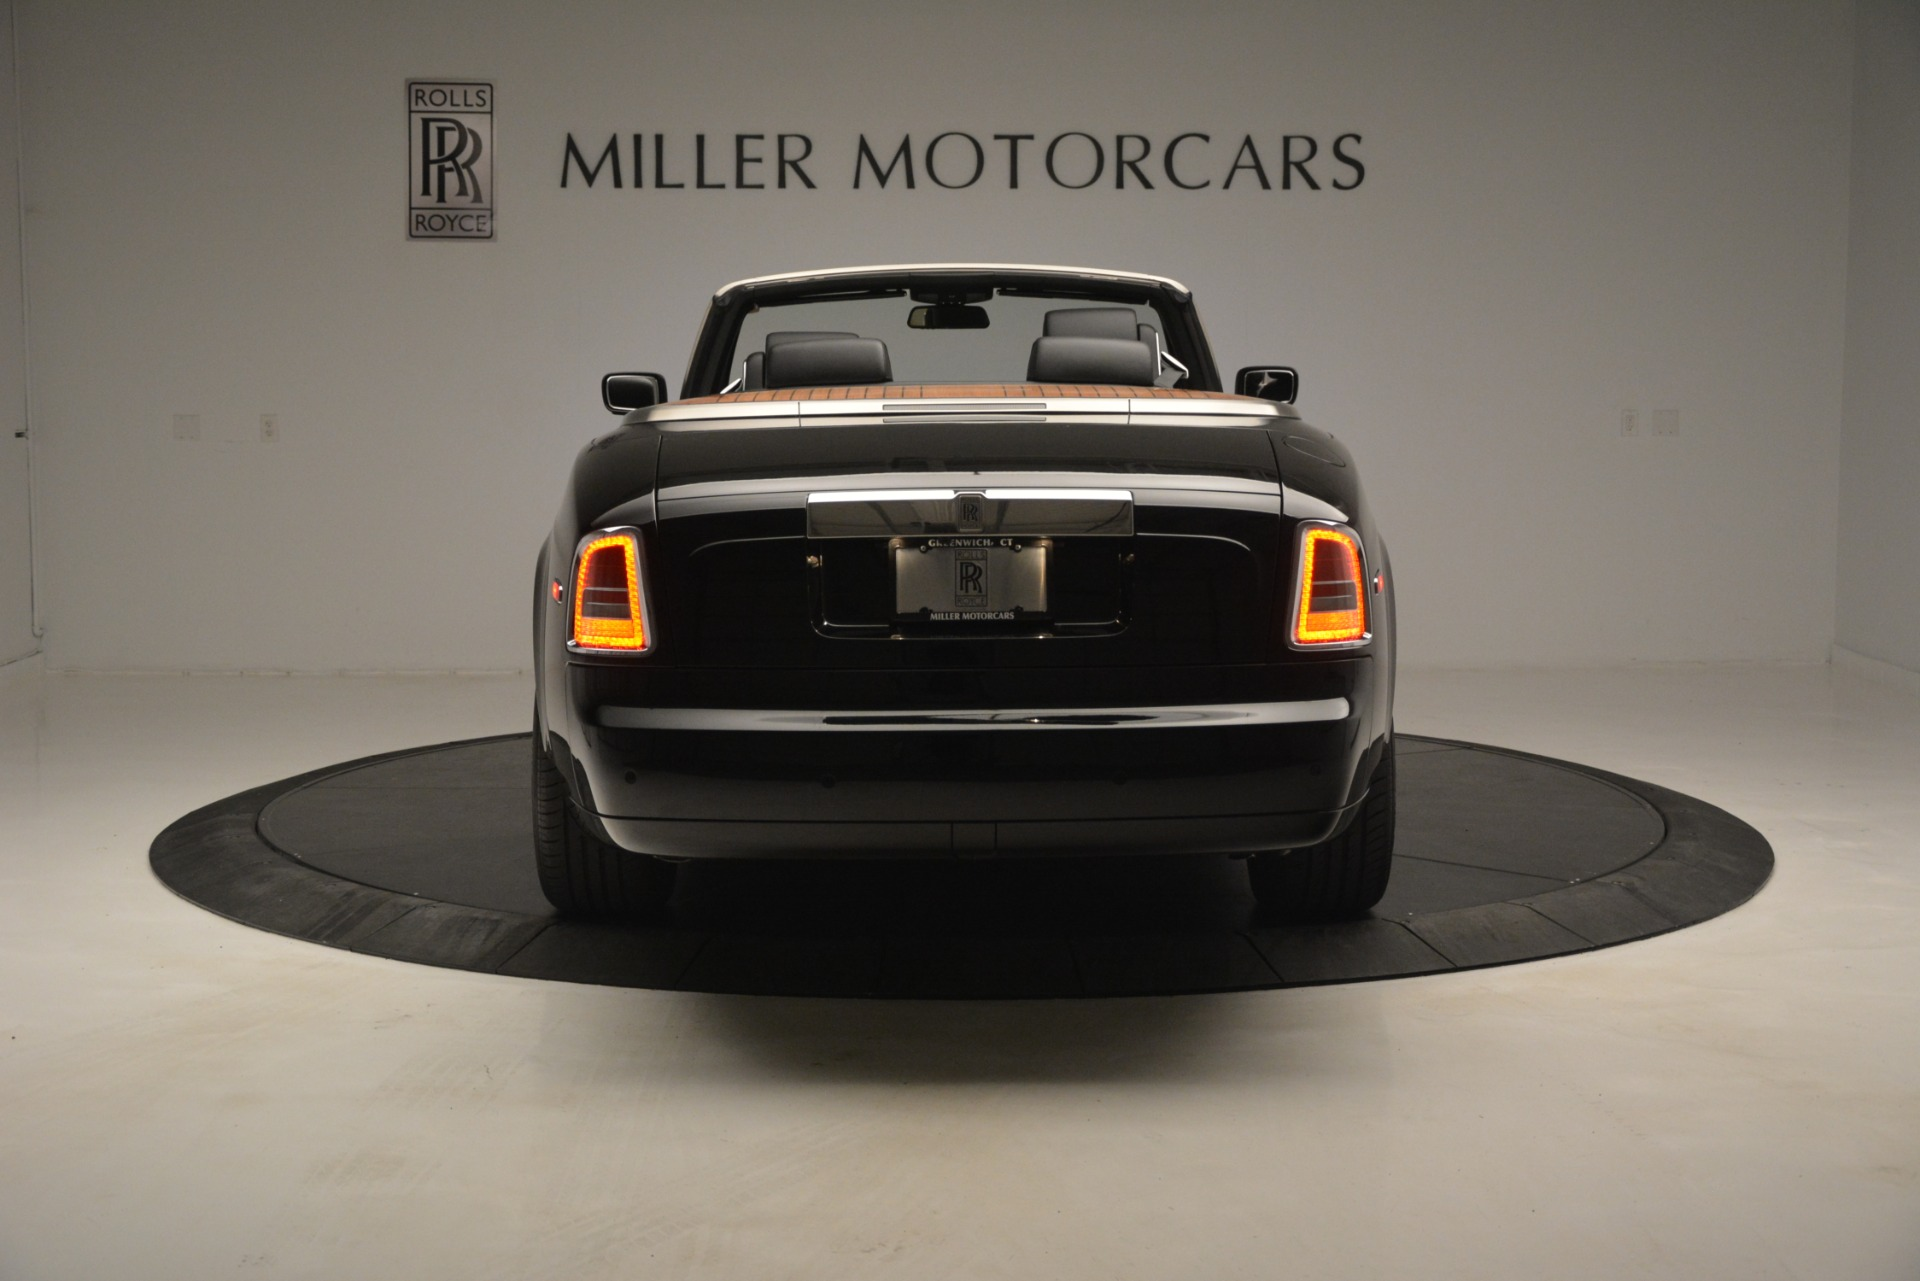 Used 2008 Rolls-Royce Phantom Drophead Coupe  For Sale In Westport, CT 3000_p9